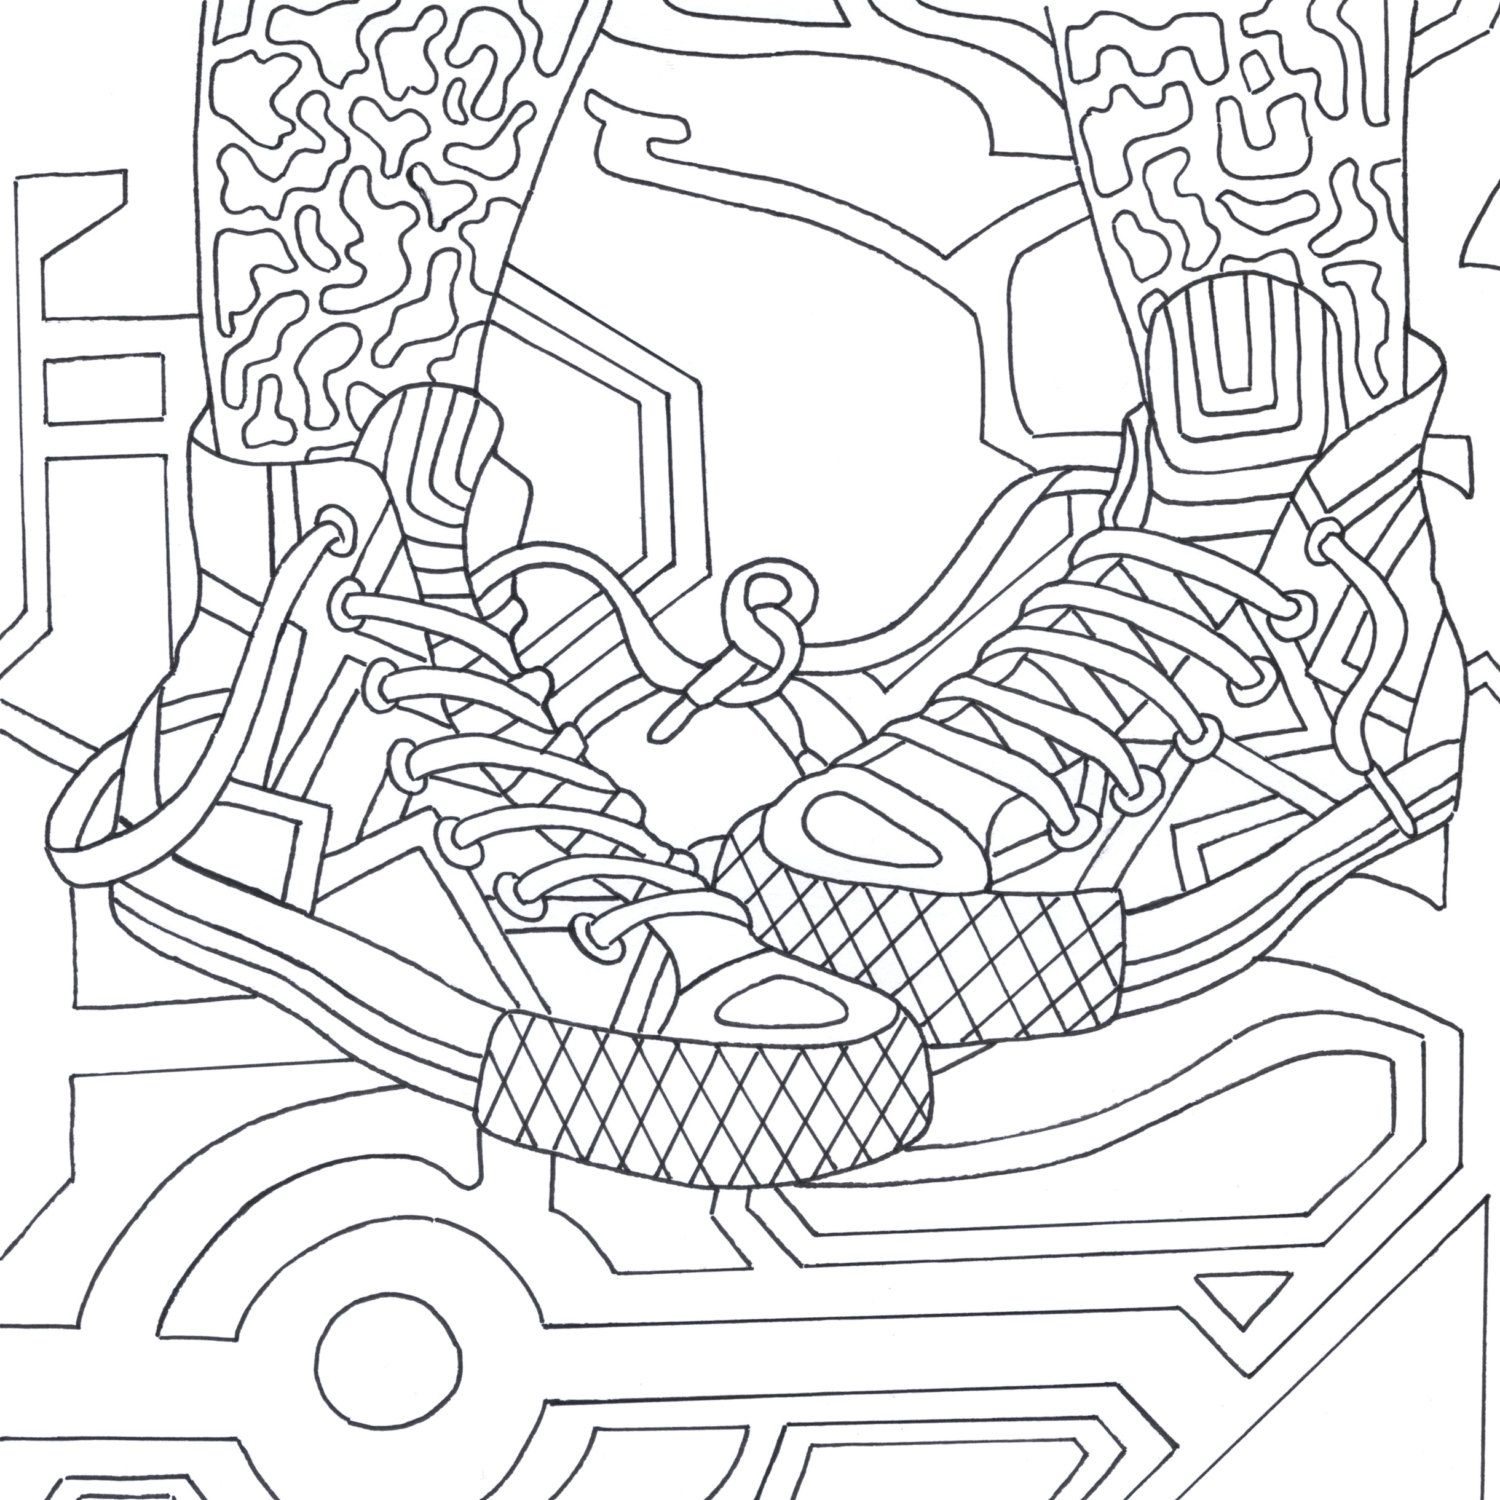 Coloring pages furniture - Printable Coloring Page Zentangle Dance Coloring Book